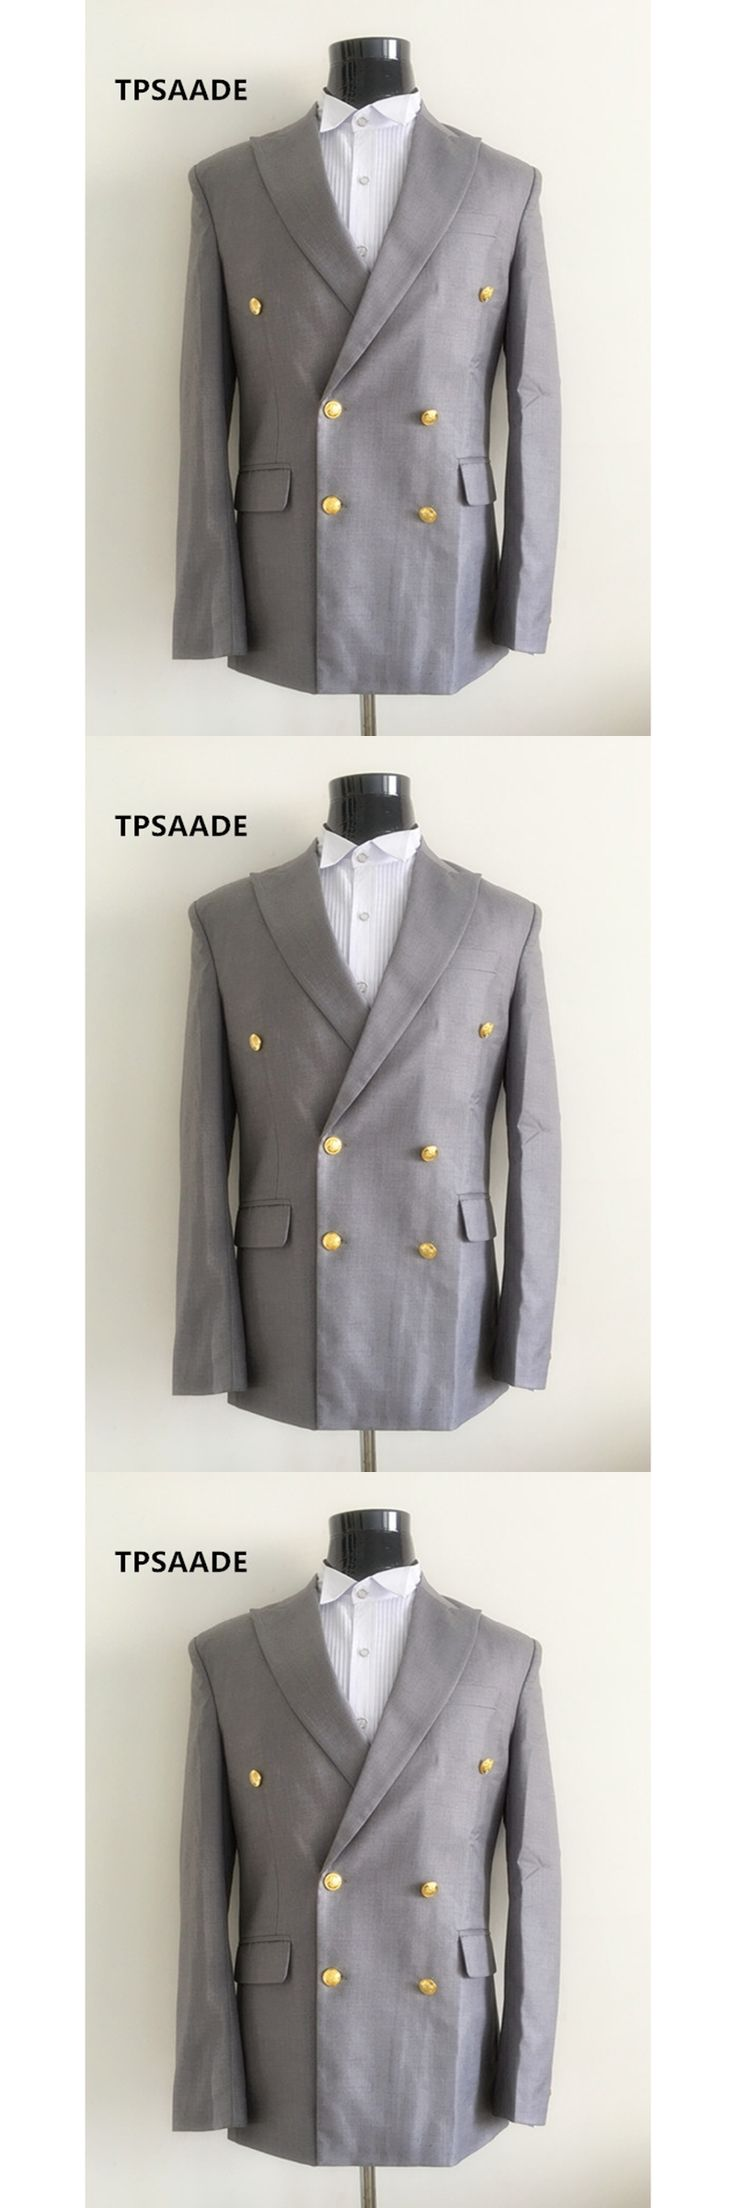 RealPhoto Gray Terno Cheap Tuxedo Prom Mens Suits Double Breasted Wedding Suit Slim Fit 2017 Blazer 3 Pieces (Jacket+Pants+Vest)